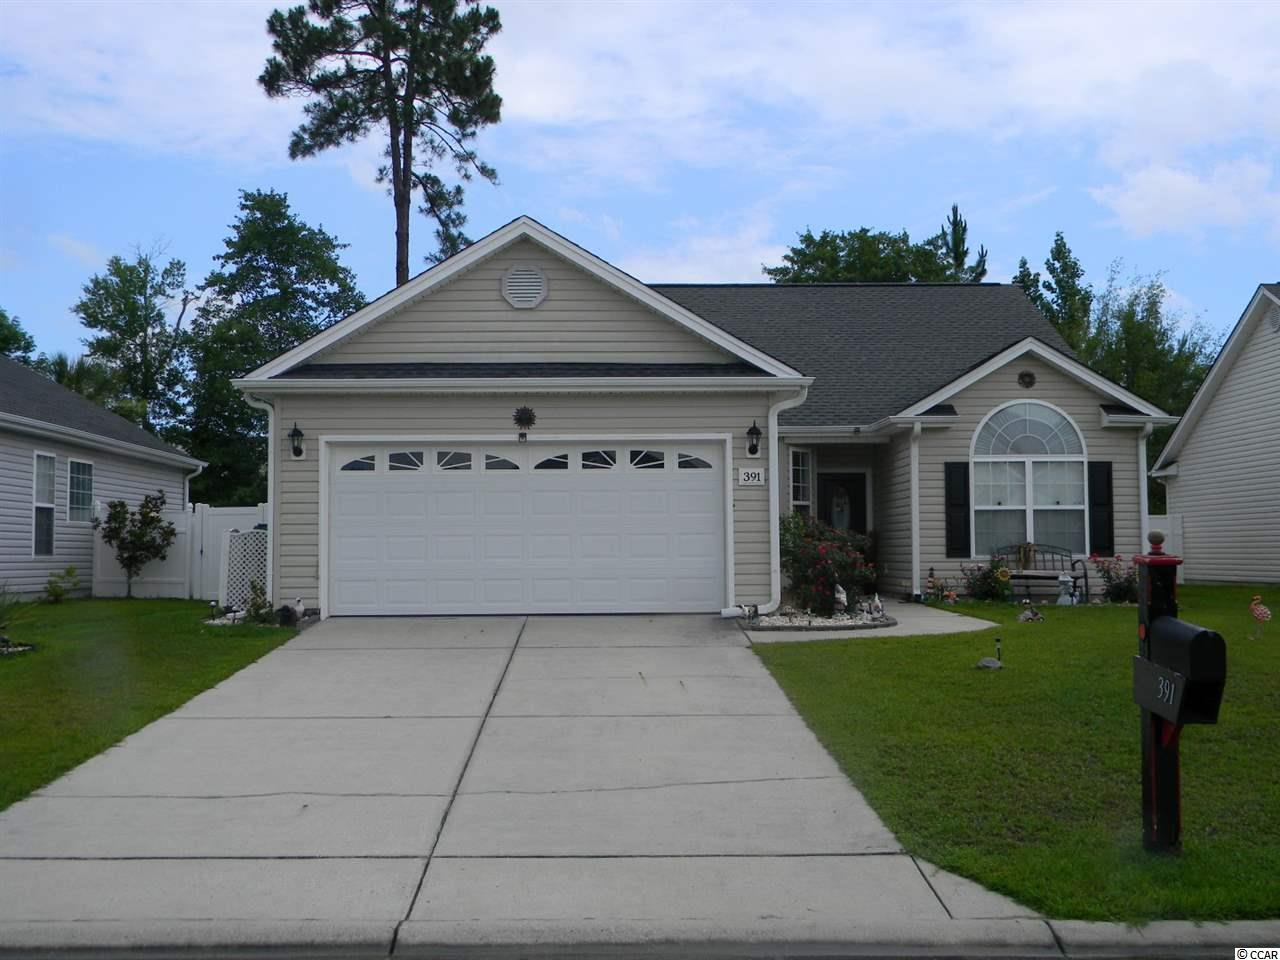 Welcome to Turtle Cove, which is located in the award winning Forestbrook and Socastee school districts. This smaller community is centrally located to all of the wonderful amenities Myrtle Beach has to offer.This community has a private pool for the residents. Upon entering this home you will immediately notice the vaulted ceilings and custom ceramic floors throughout the main living areas. Ceramic floors easy to maintain floors stay cool in the summer and warm in our mild winters.  The vaulted ceilings give the great room an open and airy feeling. The open concept kitchen features over sized cabinets, new appliances and plenty of counter space. The split bedroom floor plan has 3 large bedrooms and 2 full baths. The Master suite had a huge walk in closet and plenty of windows to let in our Carolina sunshine. The Master Bath features duel vanities, garden tub and a separate shower. Off of the great room is a wonderful covered porch with an extended entertaining area. This is the perfect spot to spend a lazy afternoon or a relaxing evening outdoors.  This backyard is completely fenced so it is perfect for anyone with children or pets.This home also has extra storage over the extended 2 car garage. If location and value are important to you then do not hesitate to make an appointment to view this home.